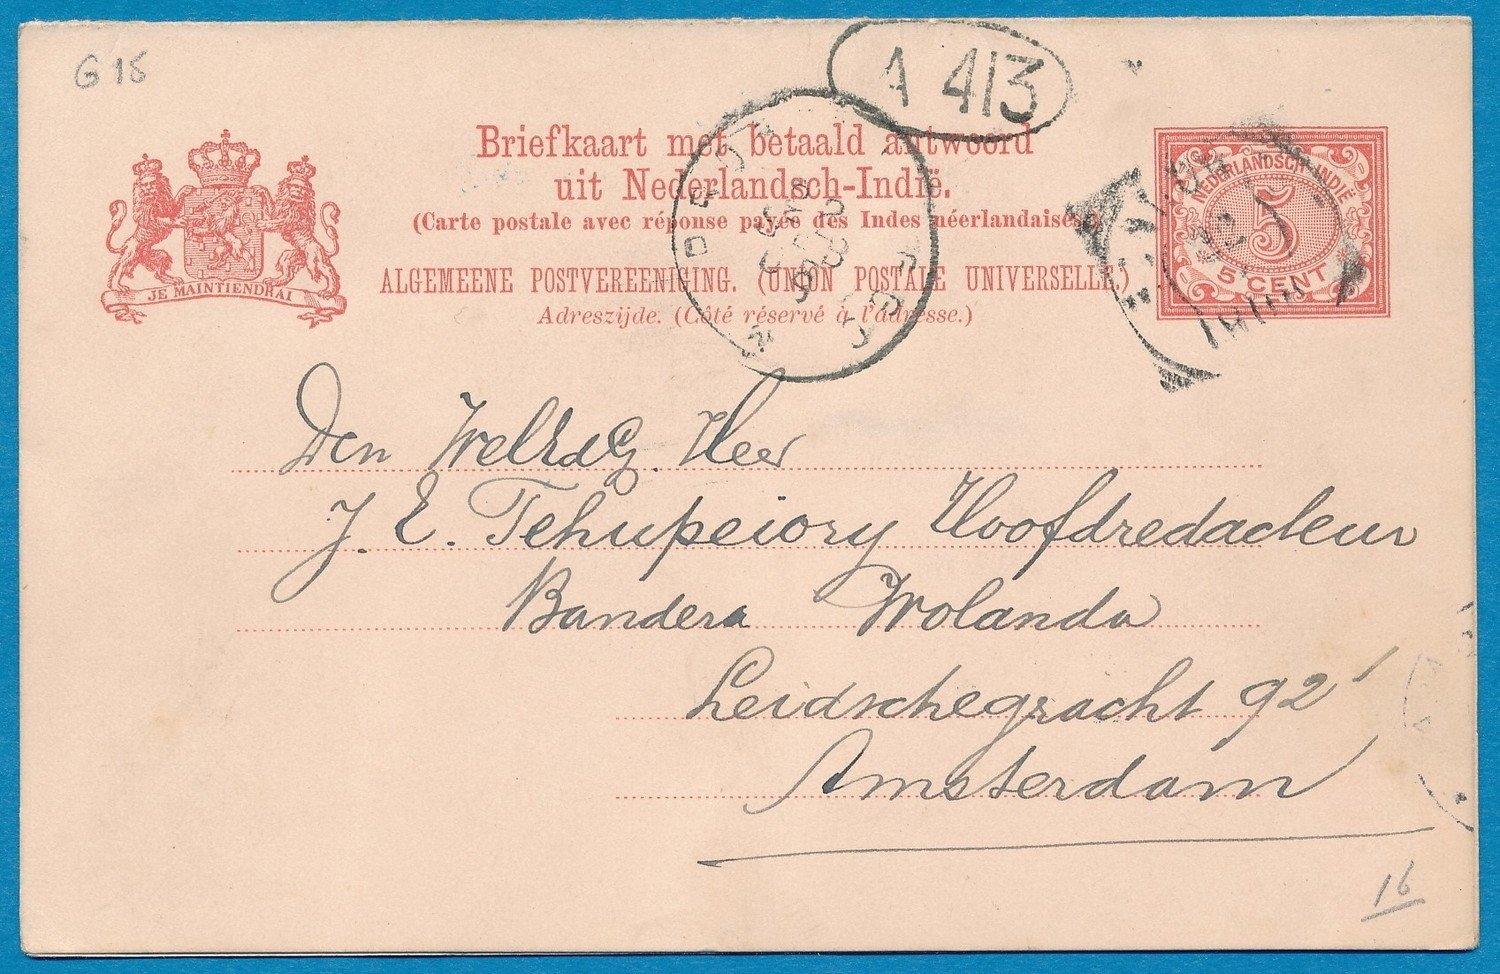 NETHERLANDS EAST INDIES postal card with reply 1908 Tjoerahdami